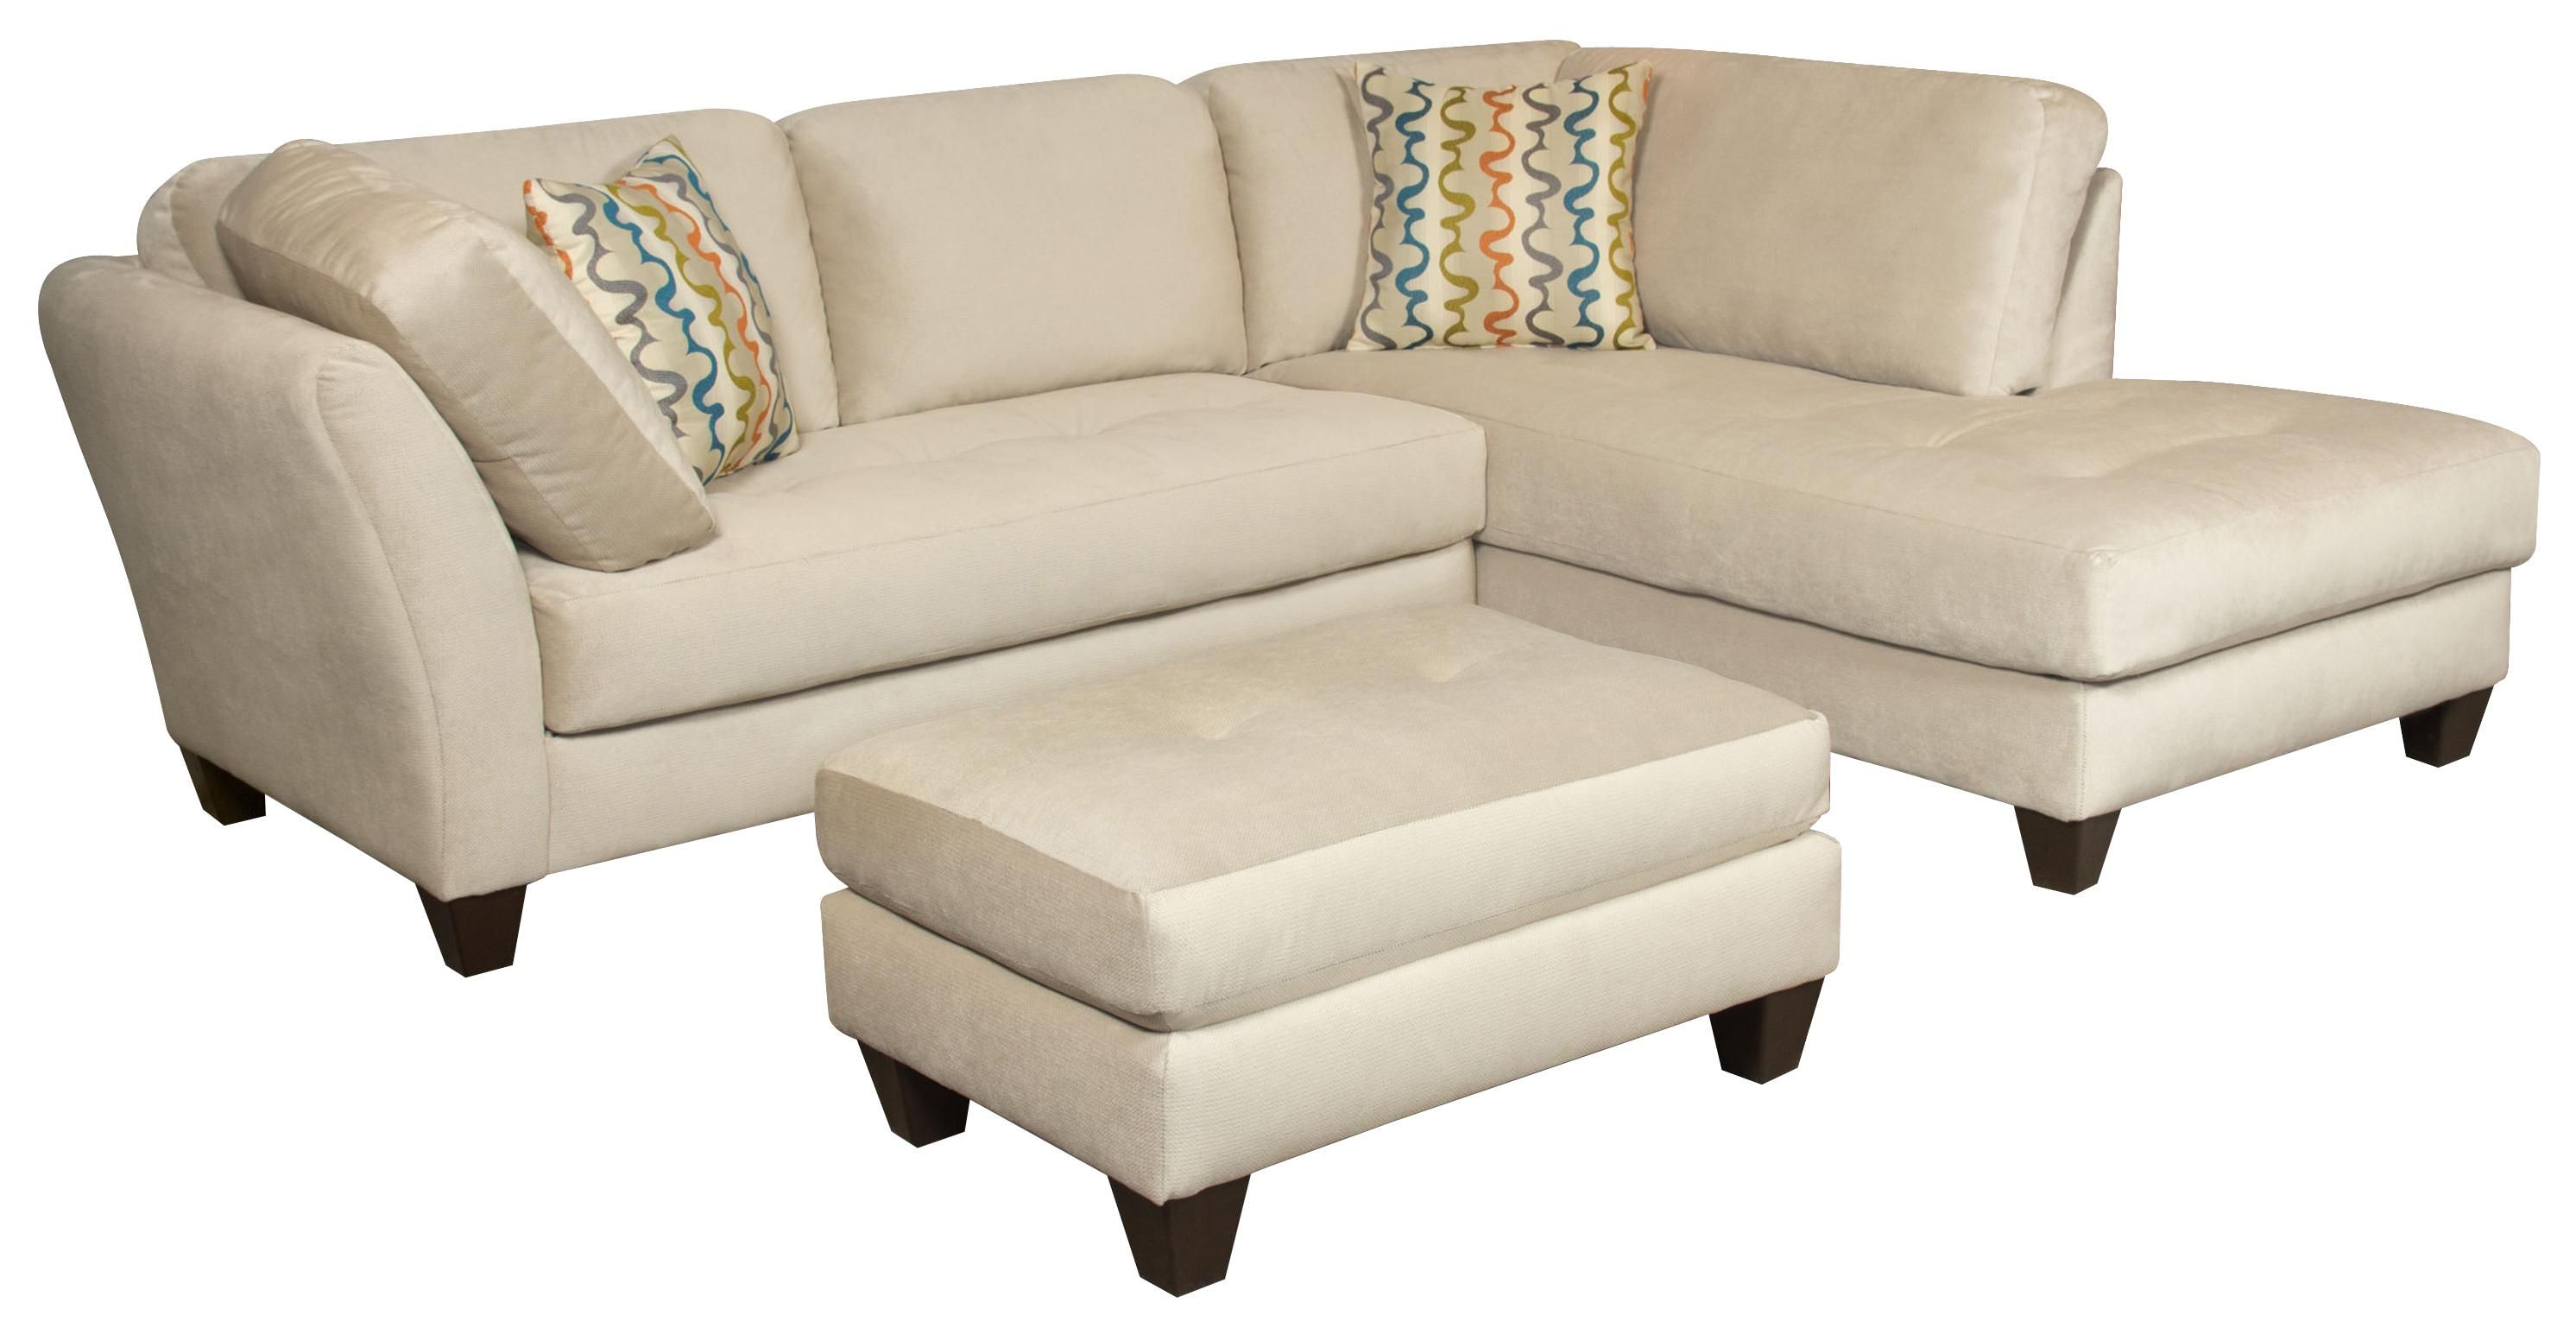 35a Sectional Sofa By Corinthian Wholesale Furniture Furniture Wolf Furniture